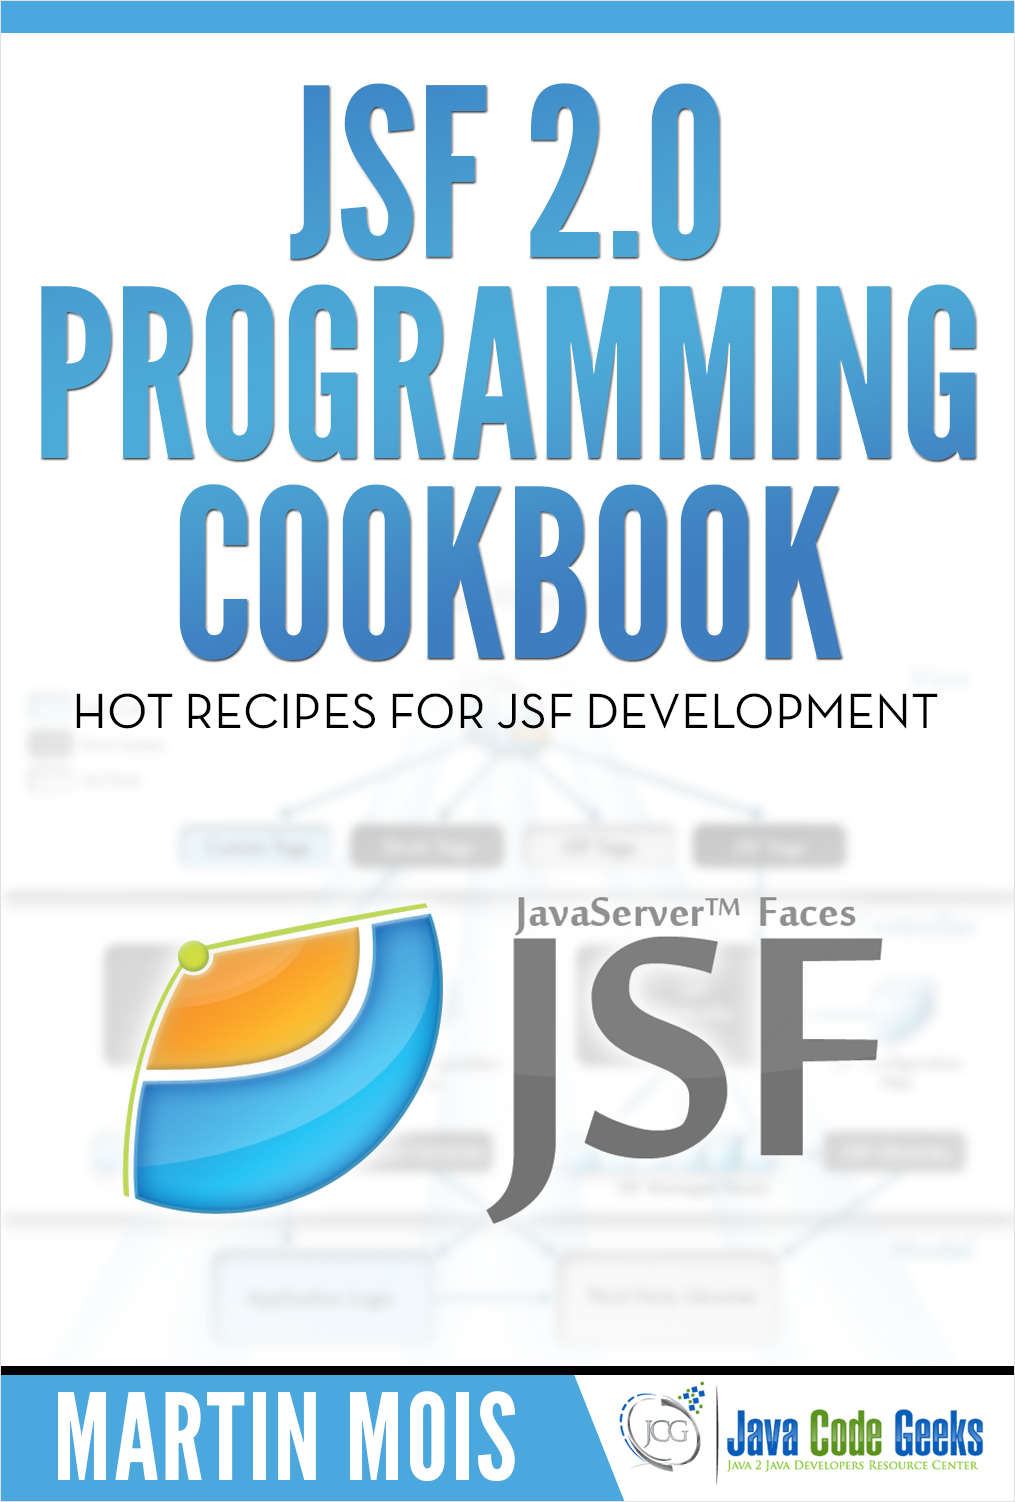 JSF 2.0 Programming Cookbook